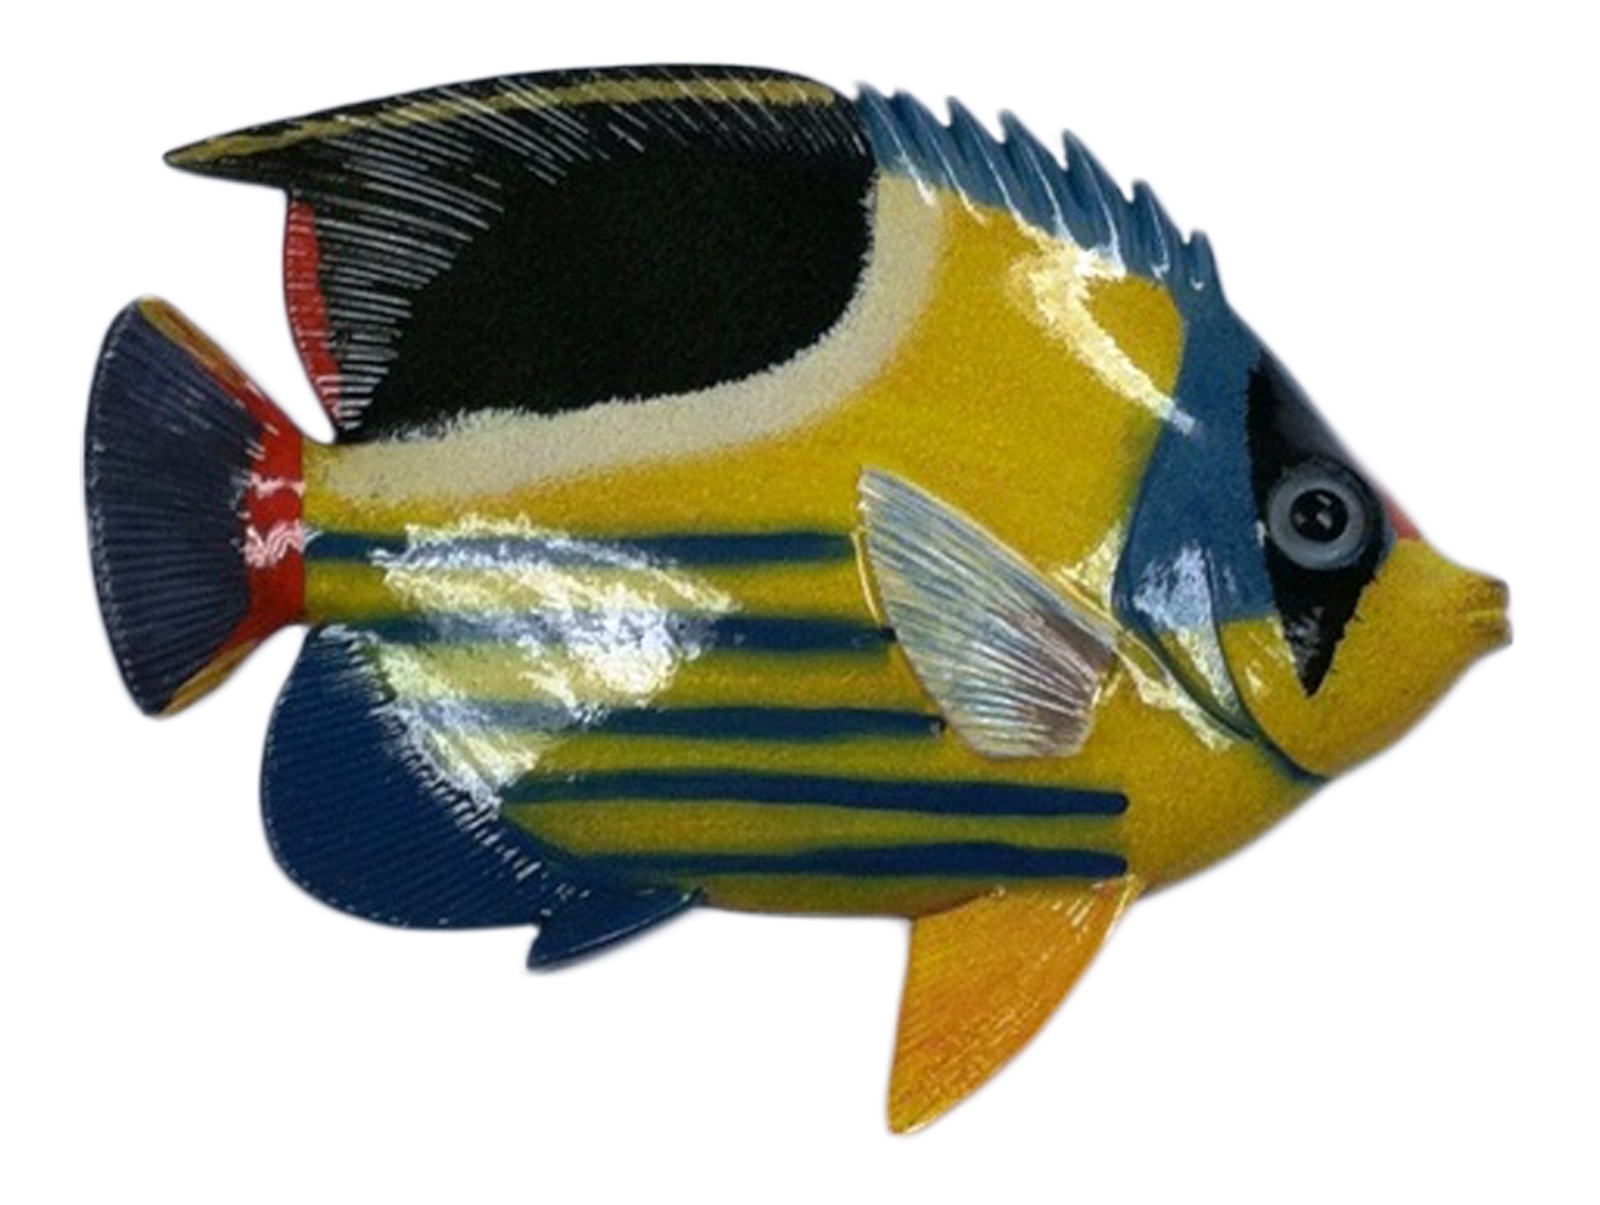 Big 12 Inch Striped Tropical Fish Bath Childrens Wall Decor 12TFW83 ...